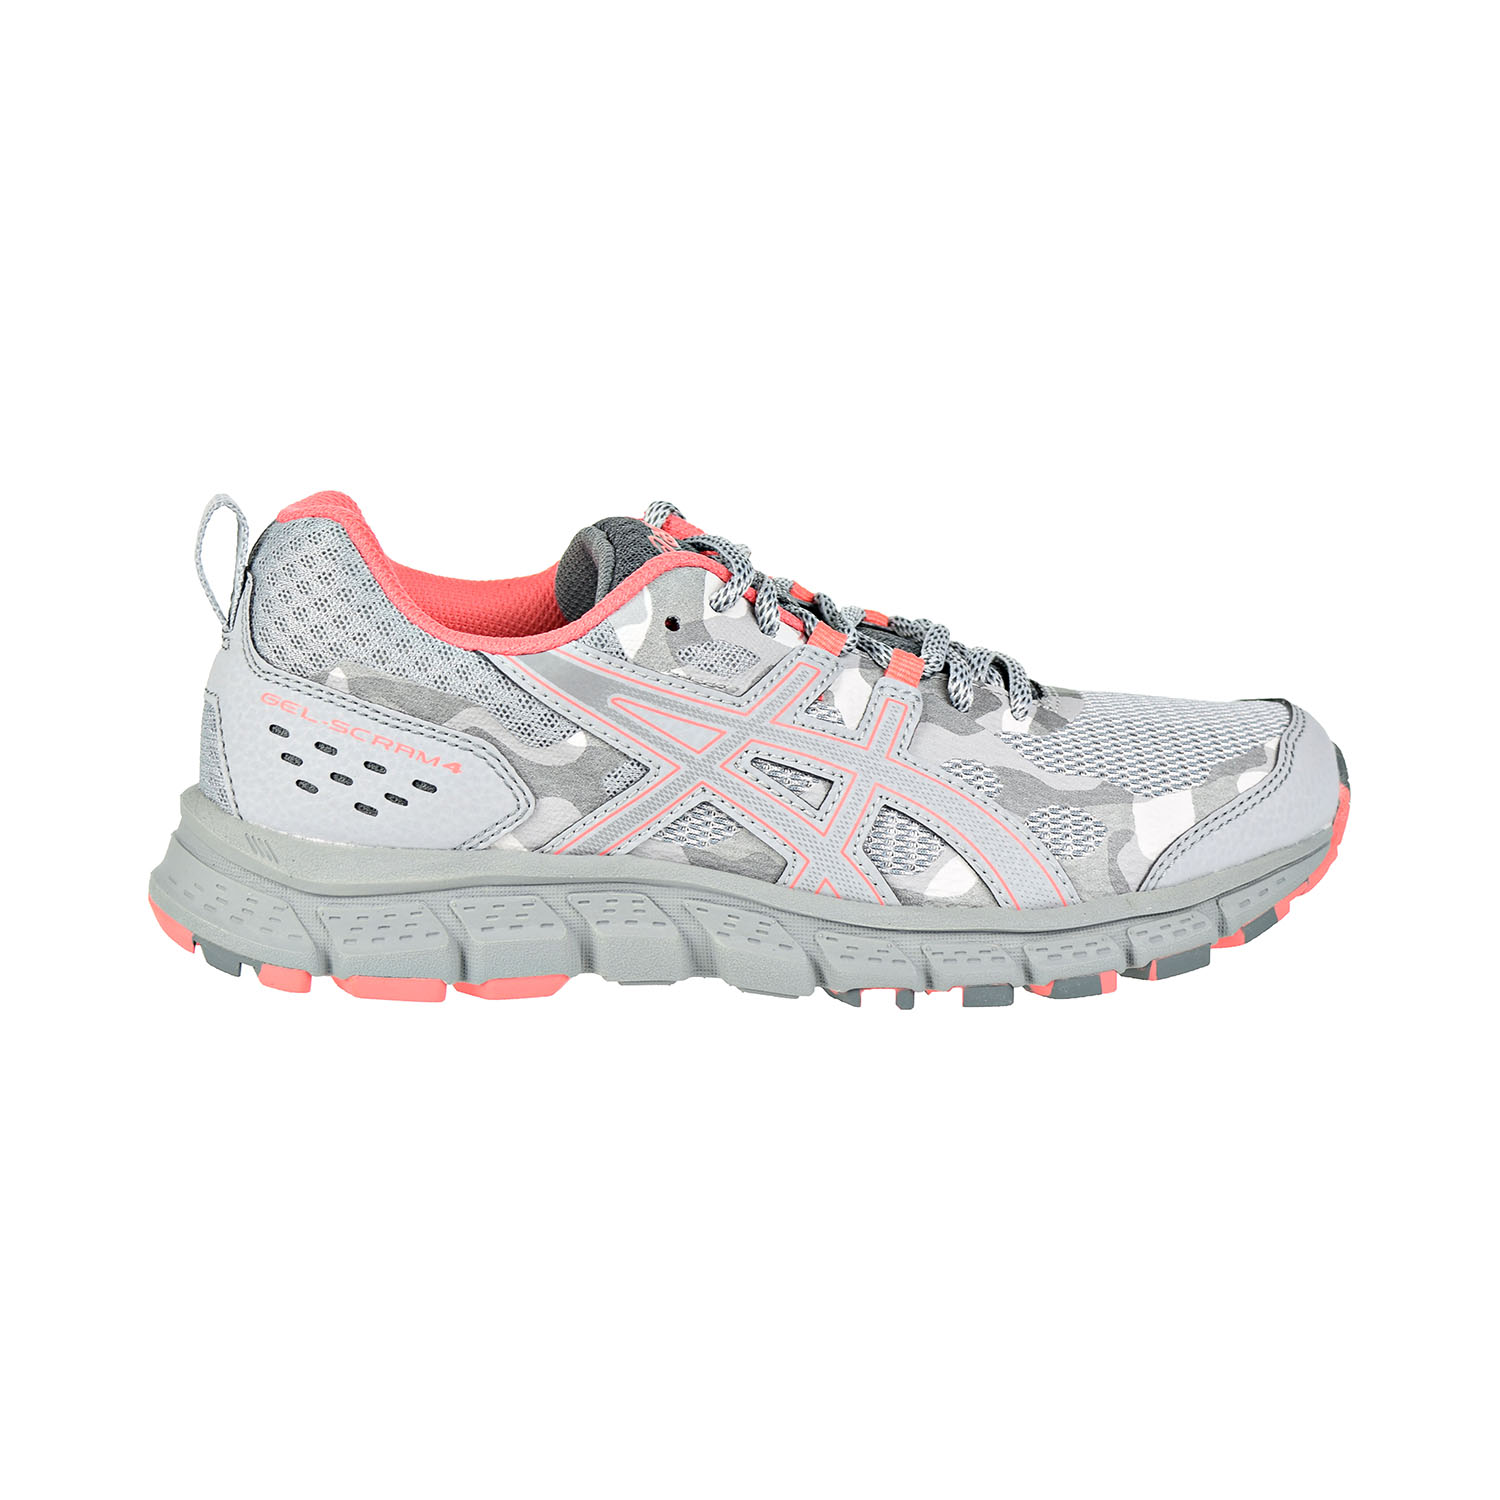 best service f96be b5f1d Details about Asics Gel-Scram 4 Women's Shoes Mid Grey/Stone Grey  1012A039-021